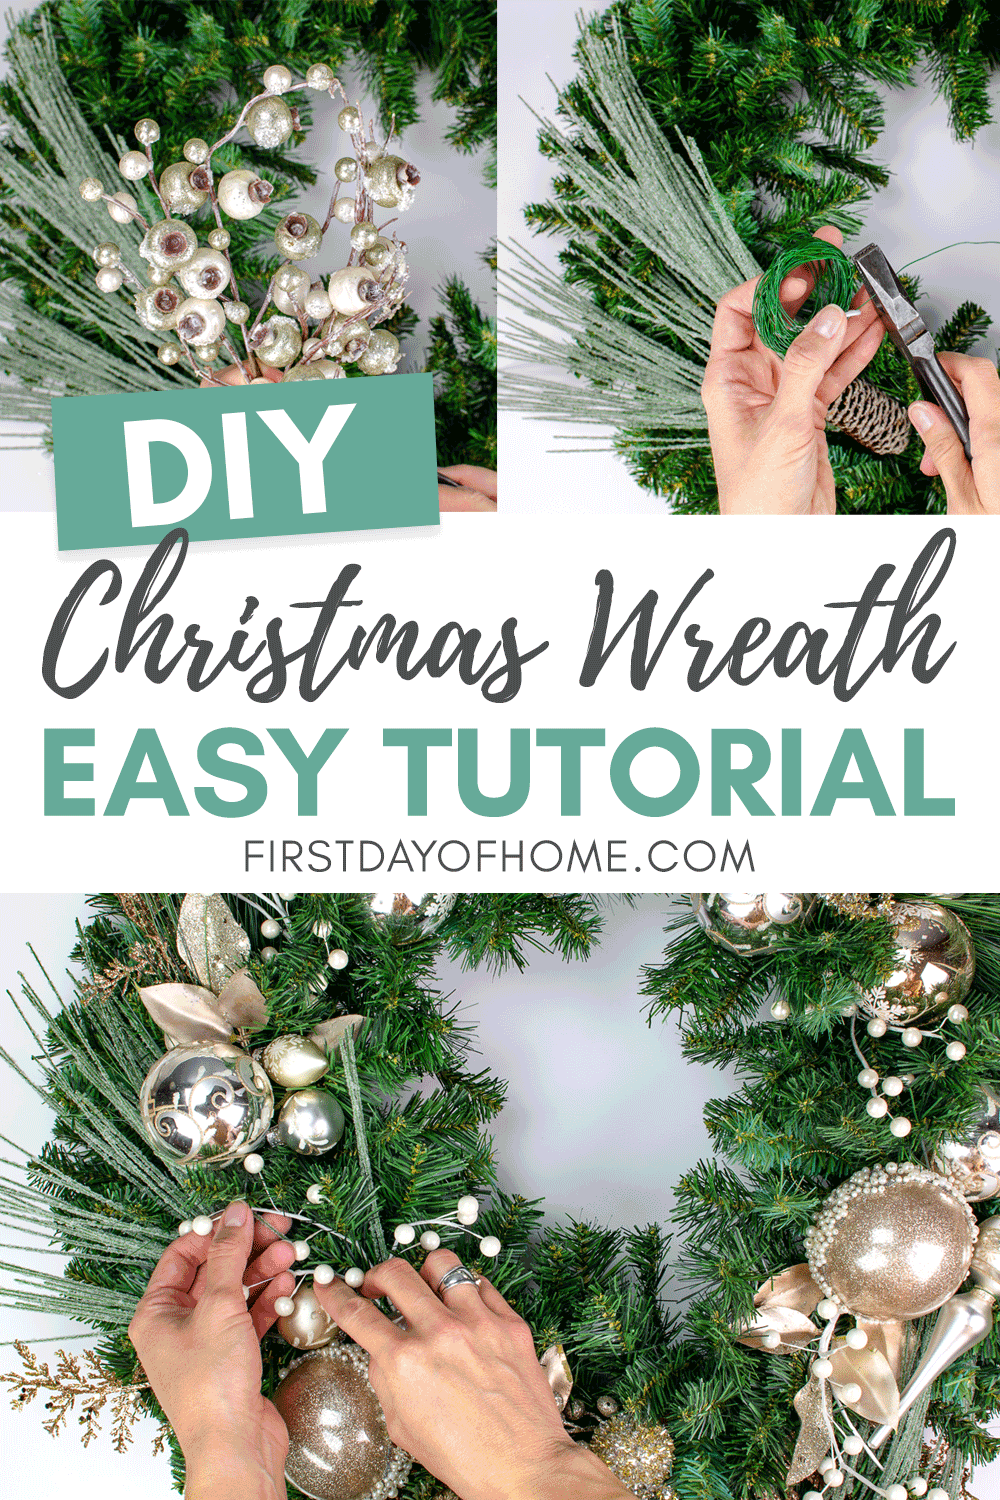 Elegant Christmas wreath made from scratch with metallic ornaments and frosted pine stems